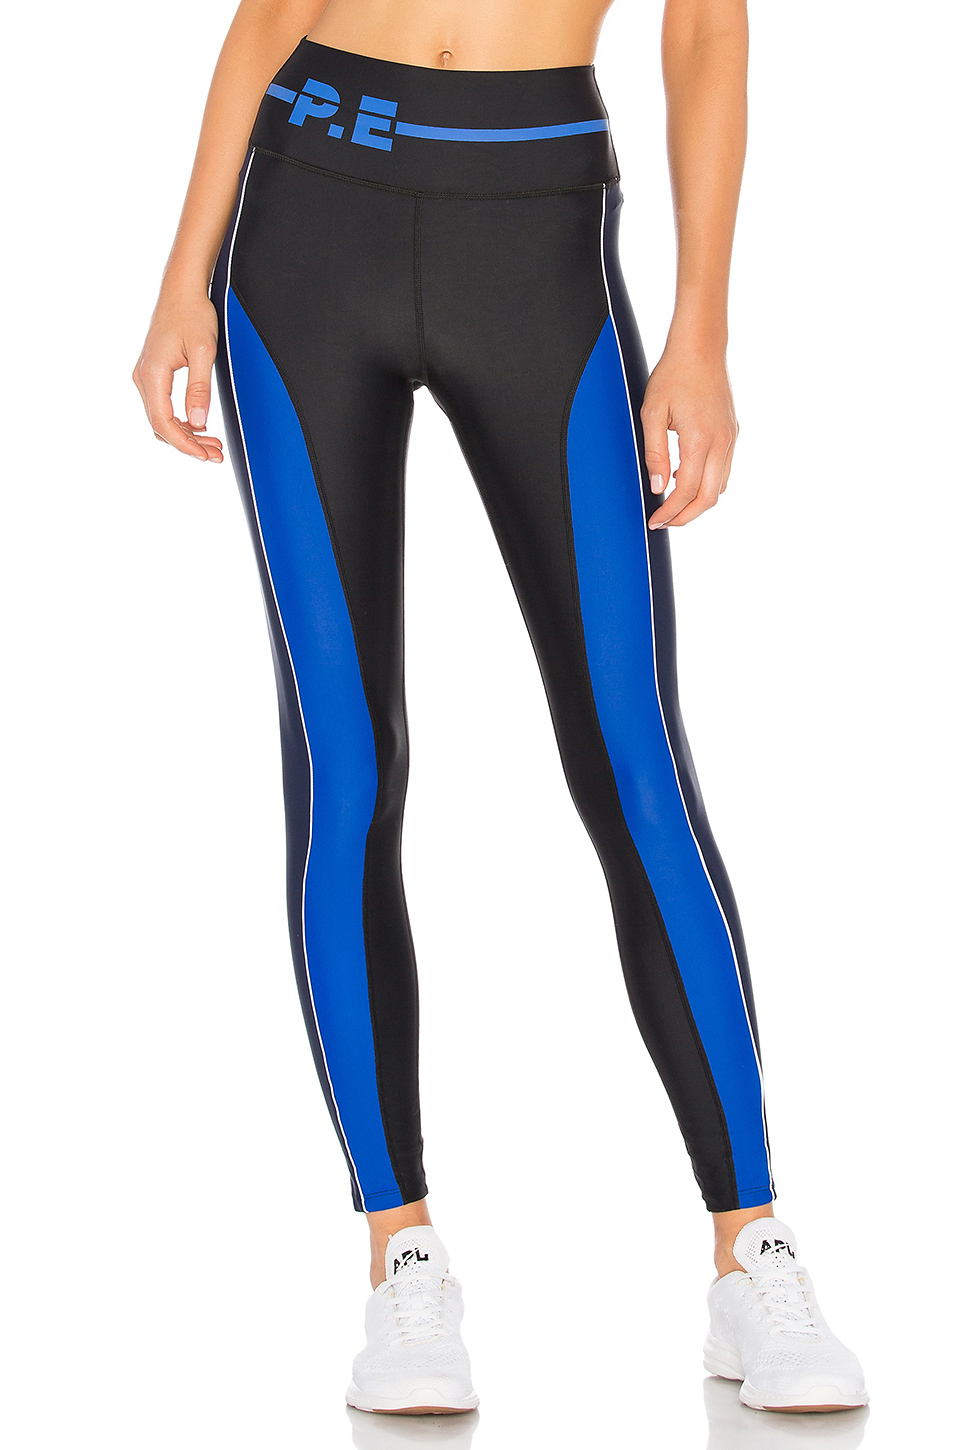 P.E Nation The Delta High Waist Legging in Black